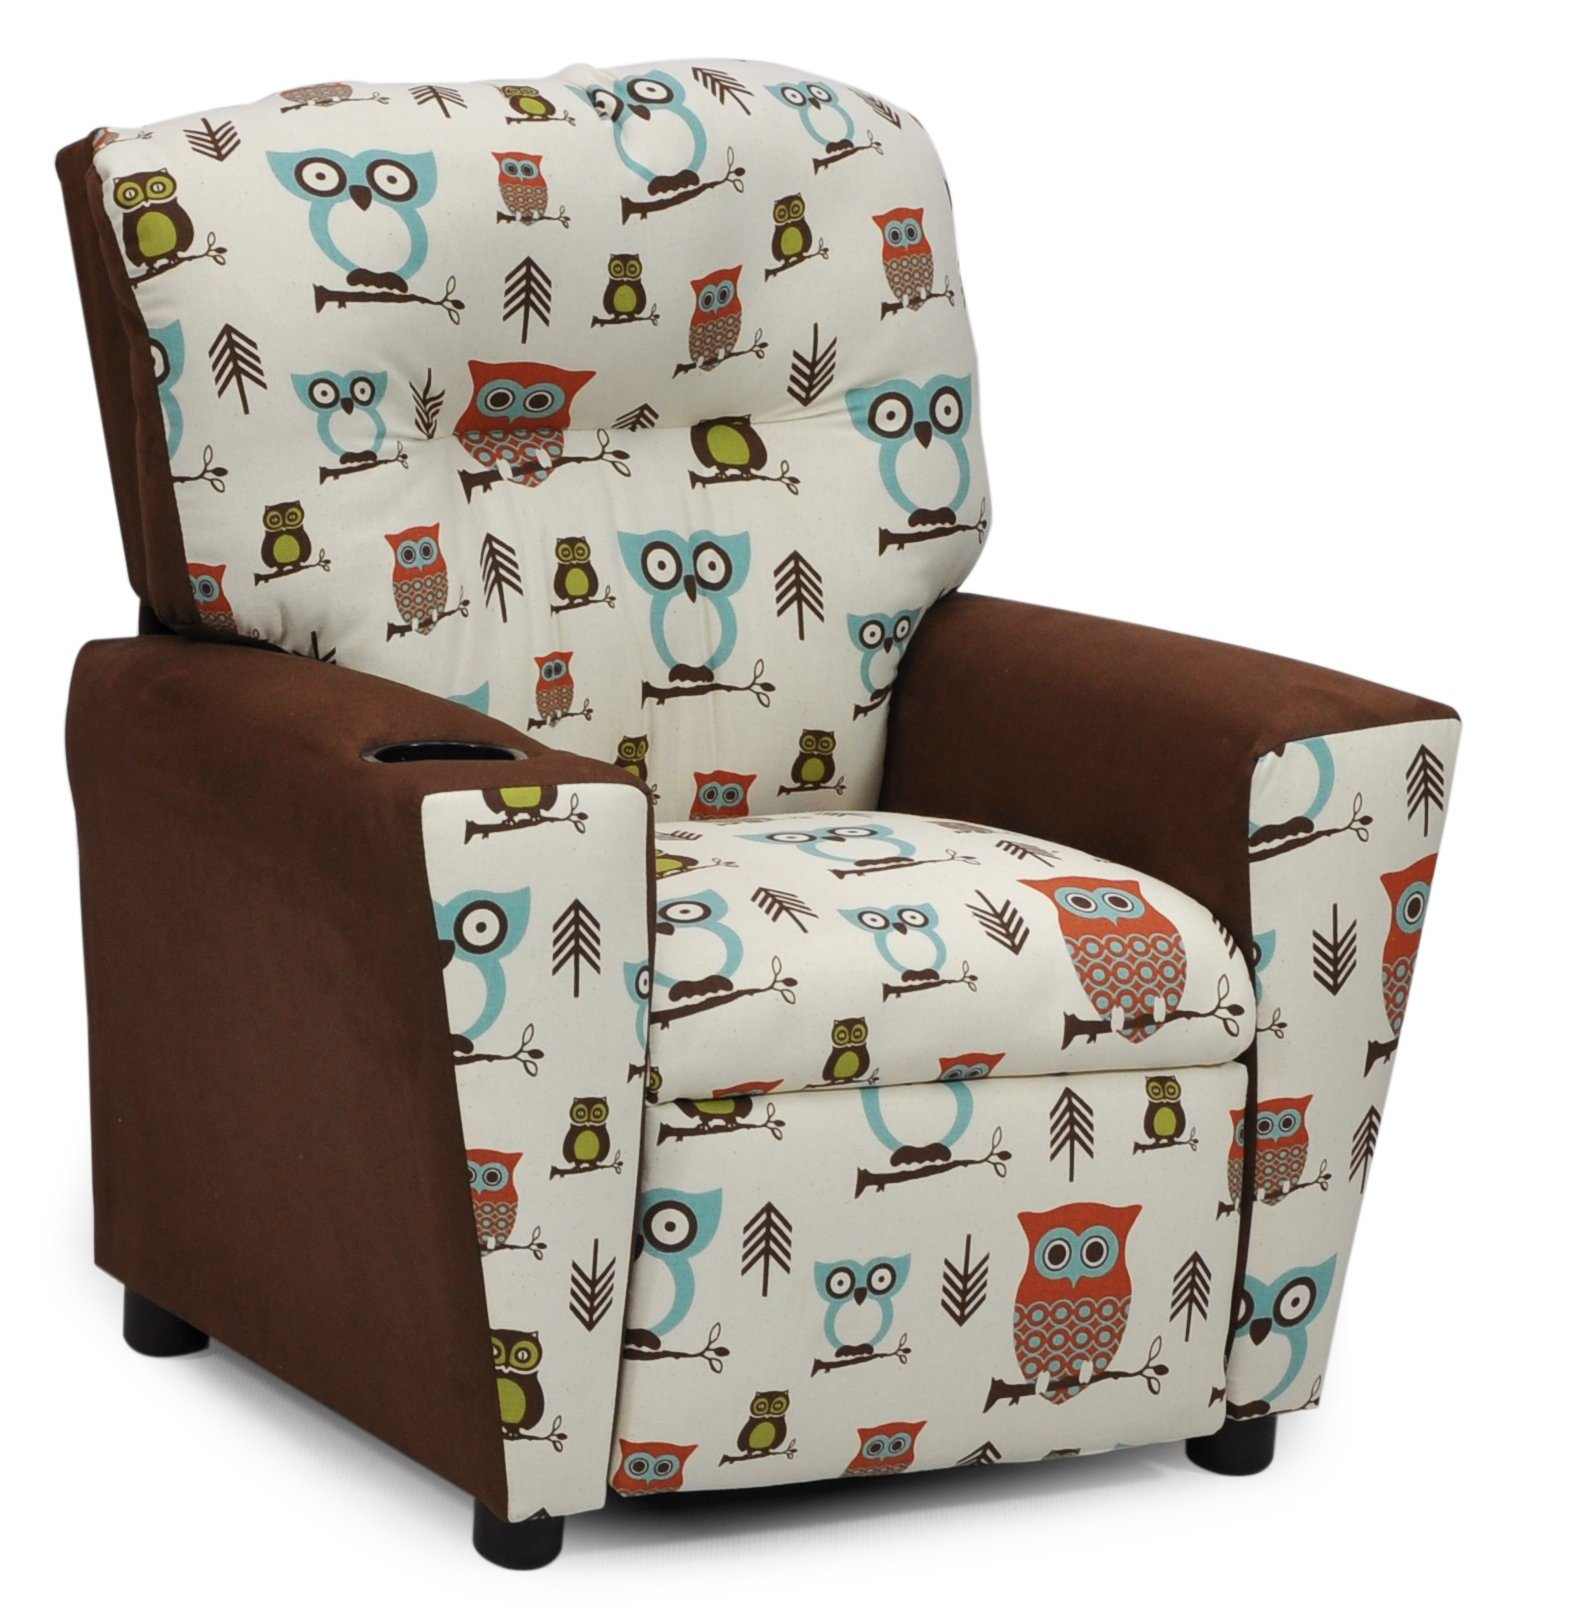 Childrens Upholstered Armchair Recliner - Your Child's Favorite Gift - Kids Reclining Chair with Cup Holders - We Love Owls :) - Two Fun Fabrics To Choose From